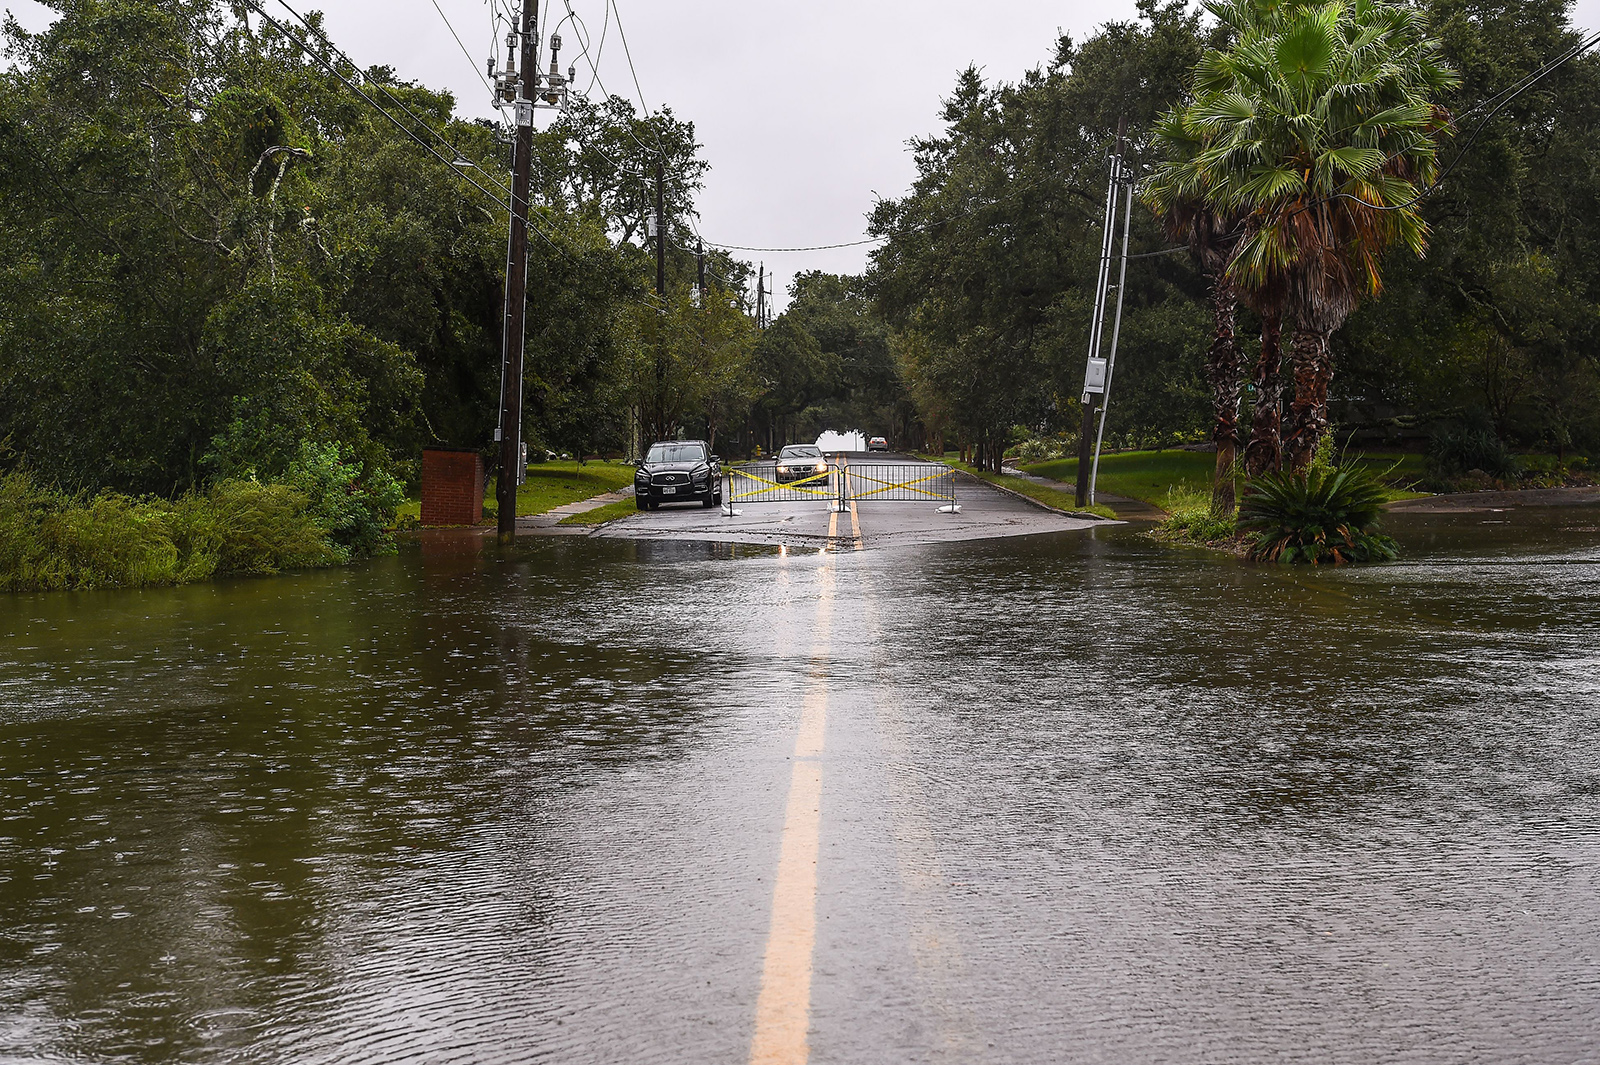 Water floods on the road near the marina hours before Hurricane Sally makes landfall on the US Gulf Coast in Pascagoula, Mississippi on Tuesday.